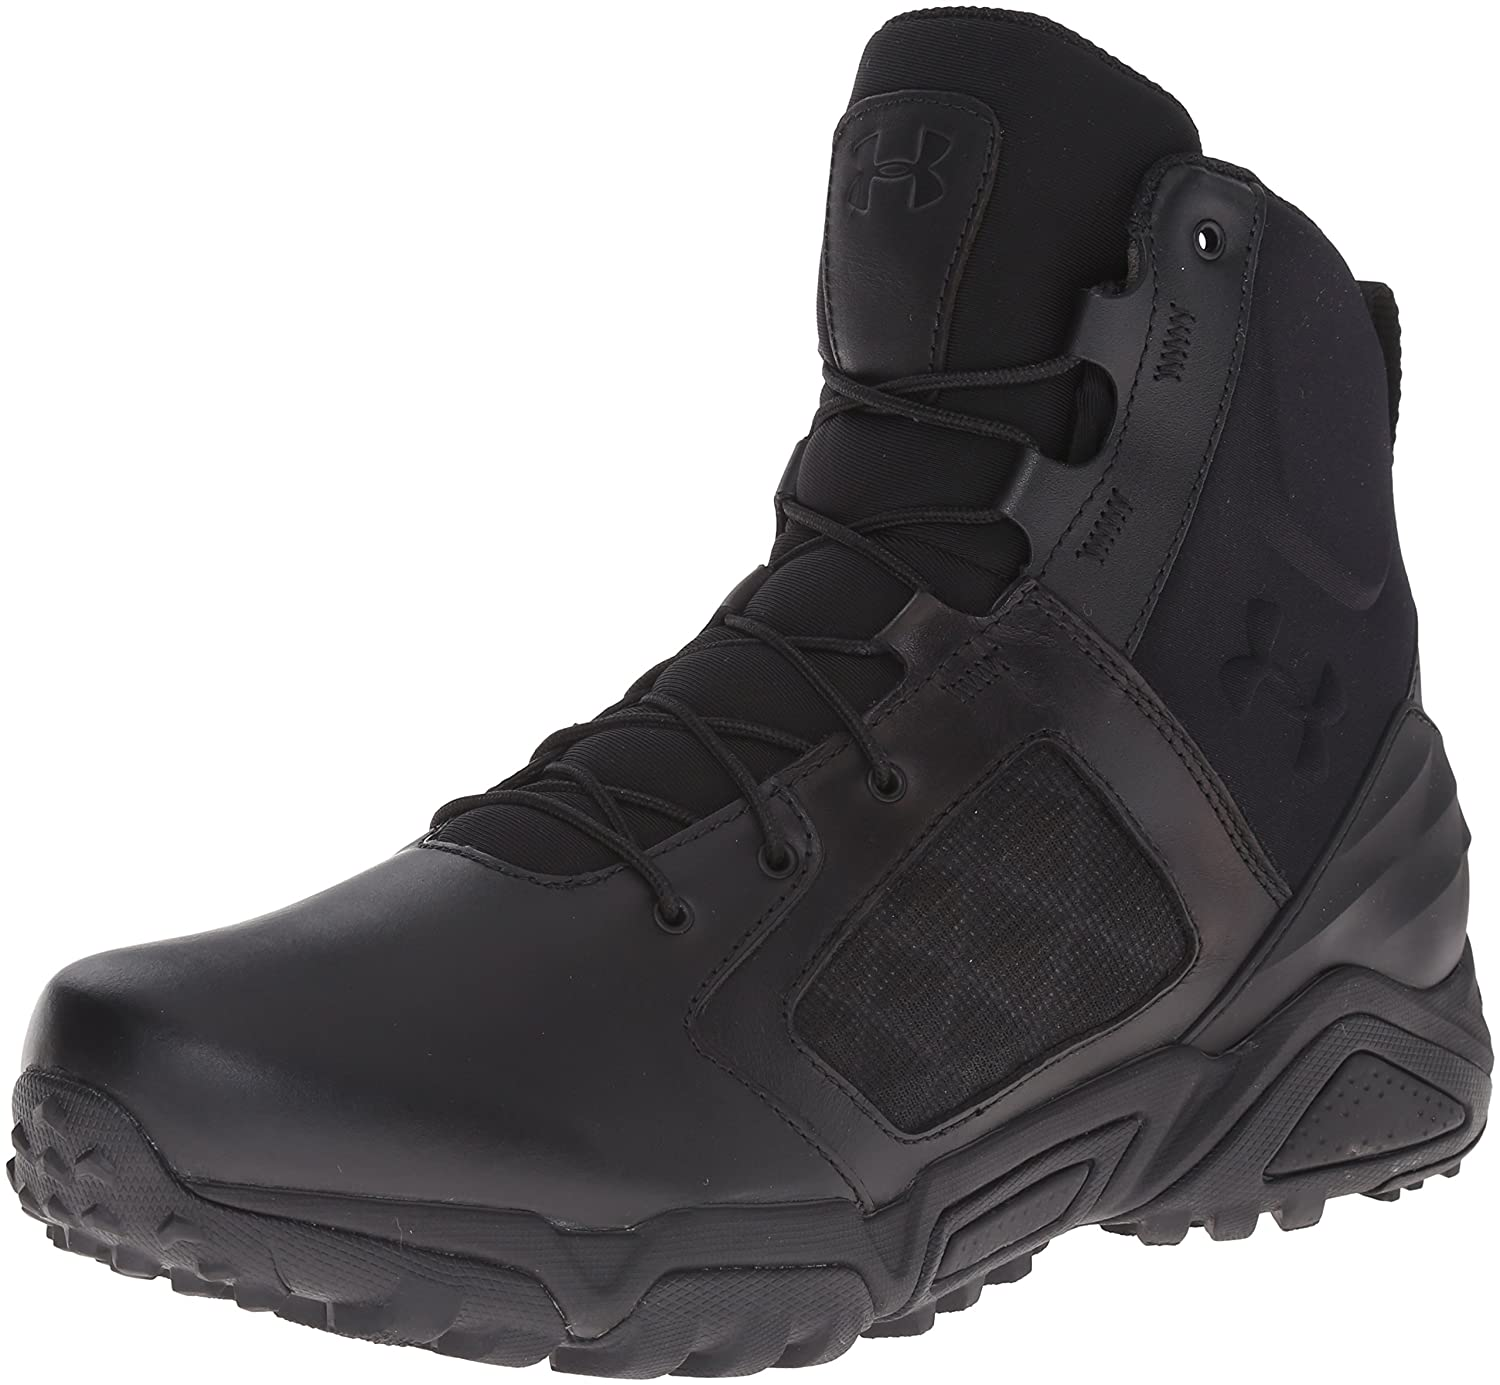 Under Armour Men's TAC Zip 2.0 Military and Tactical Boot 1261916